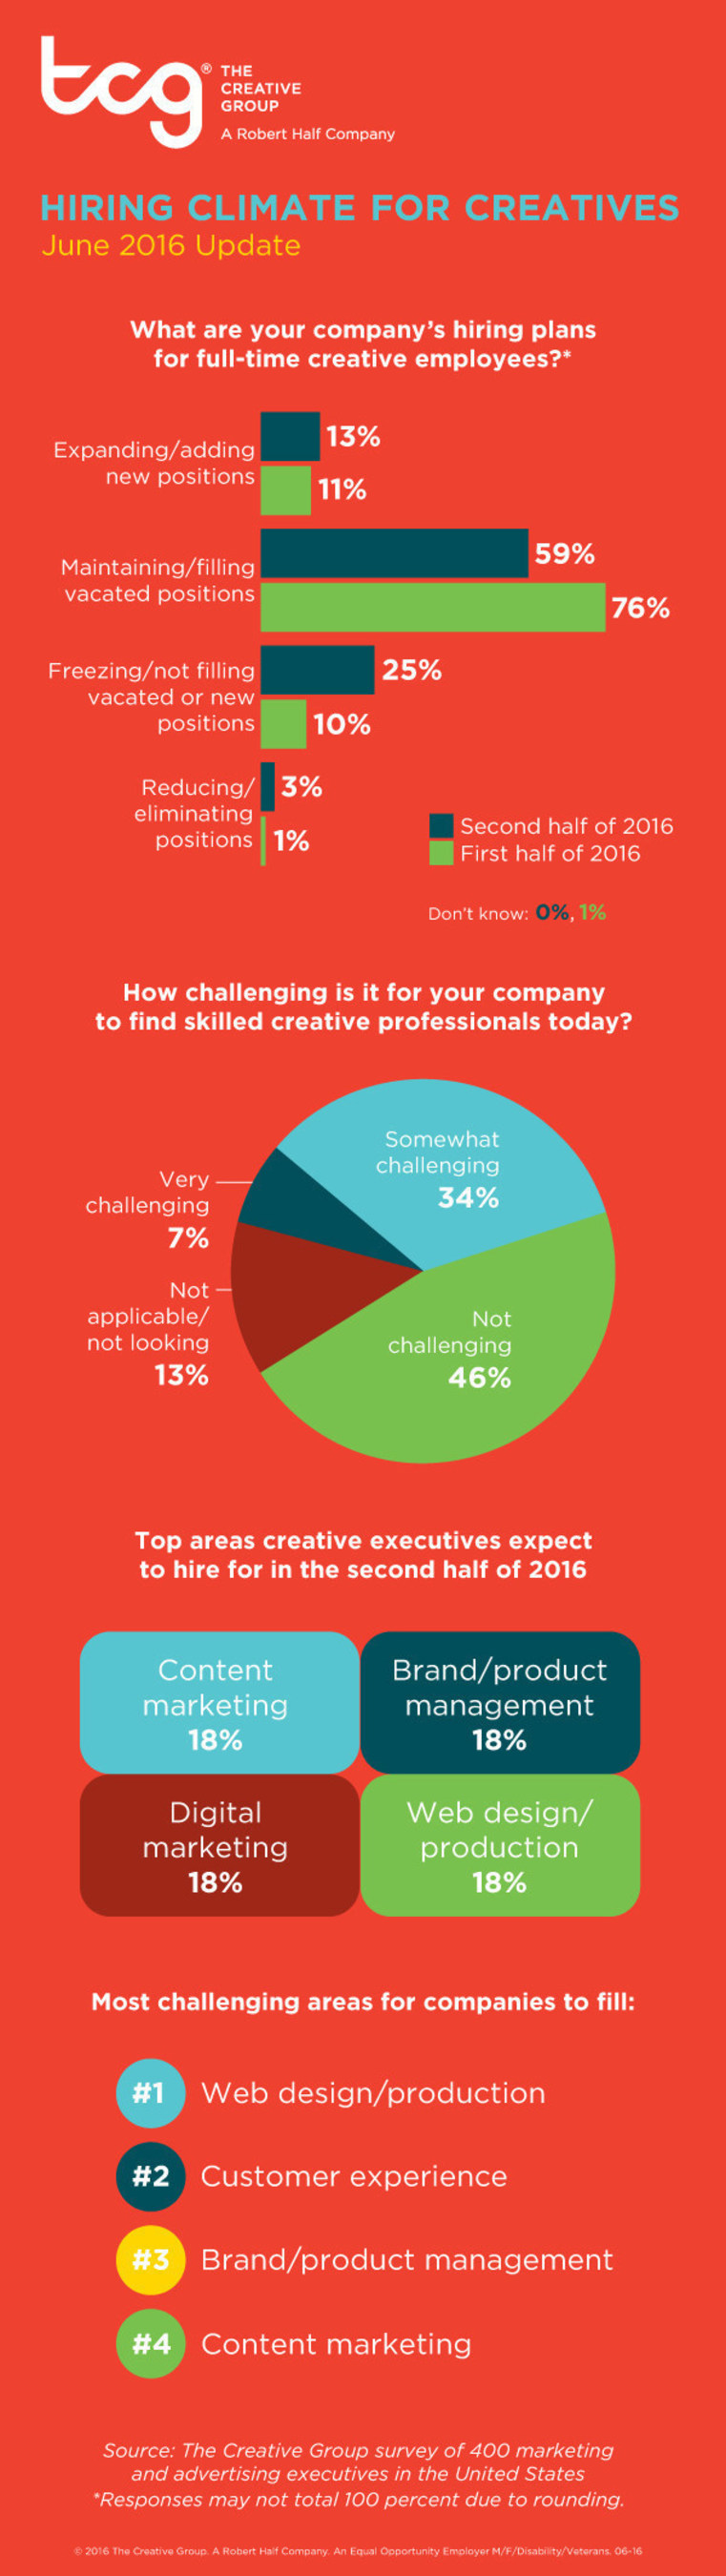 Research from The Creative Group reveals U.S. advertising and marketing executives' hiring plans for second half of 2016